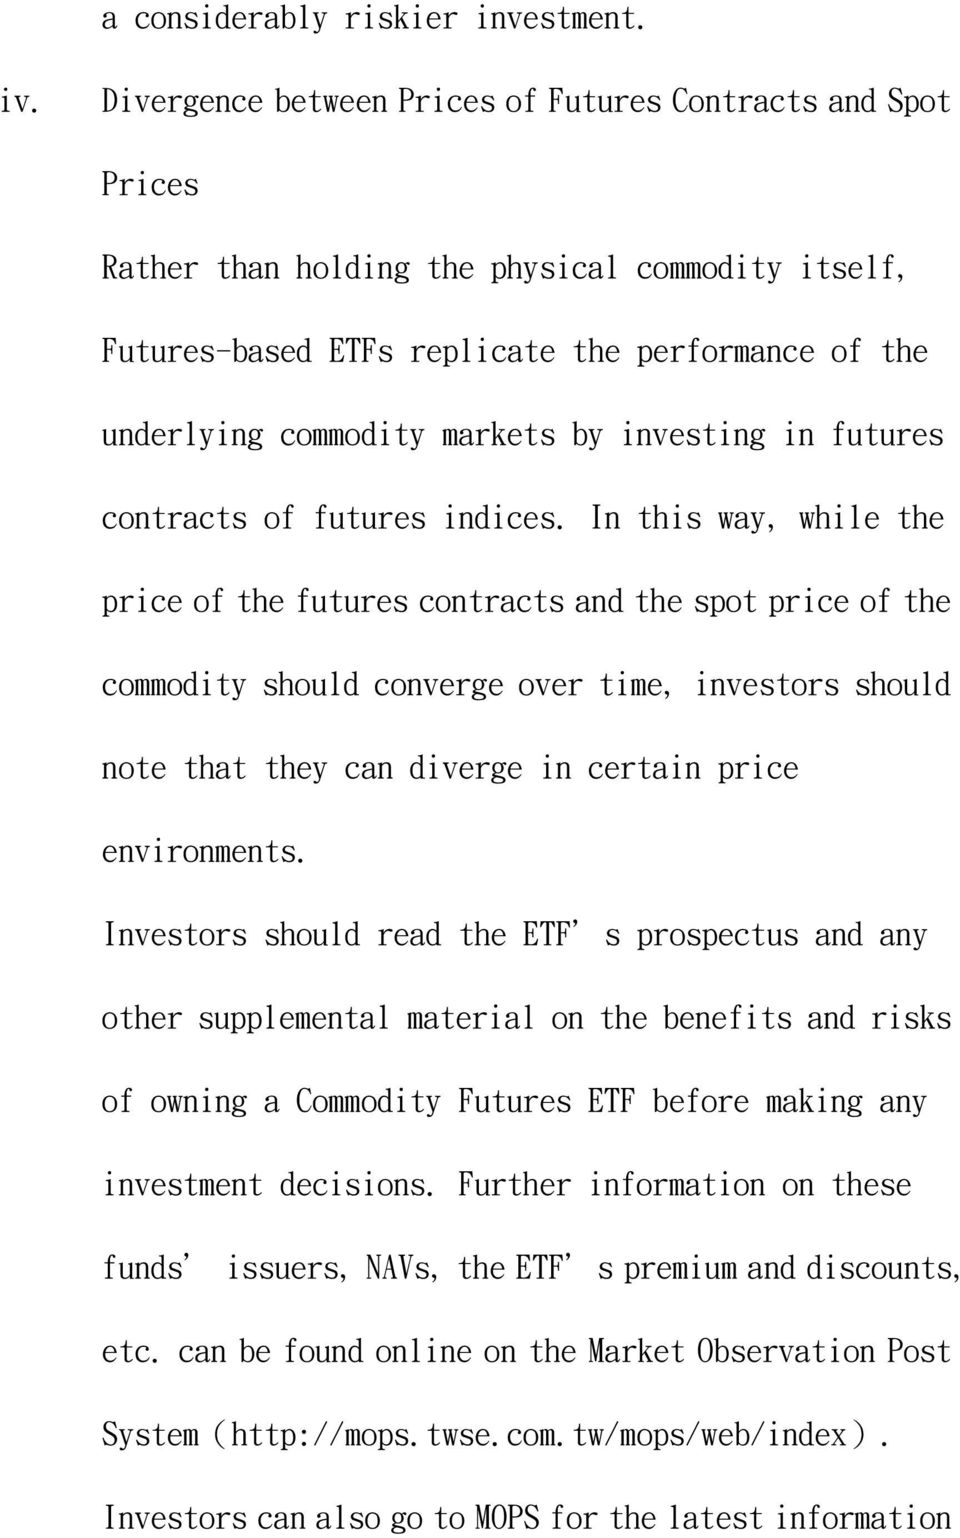 investing in futures contracts of futures indices.